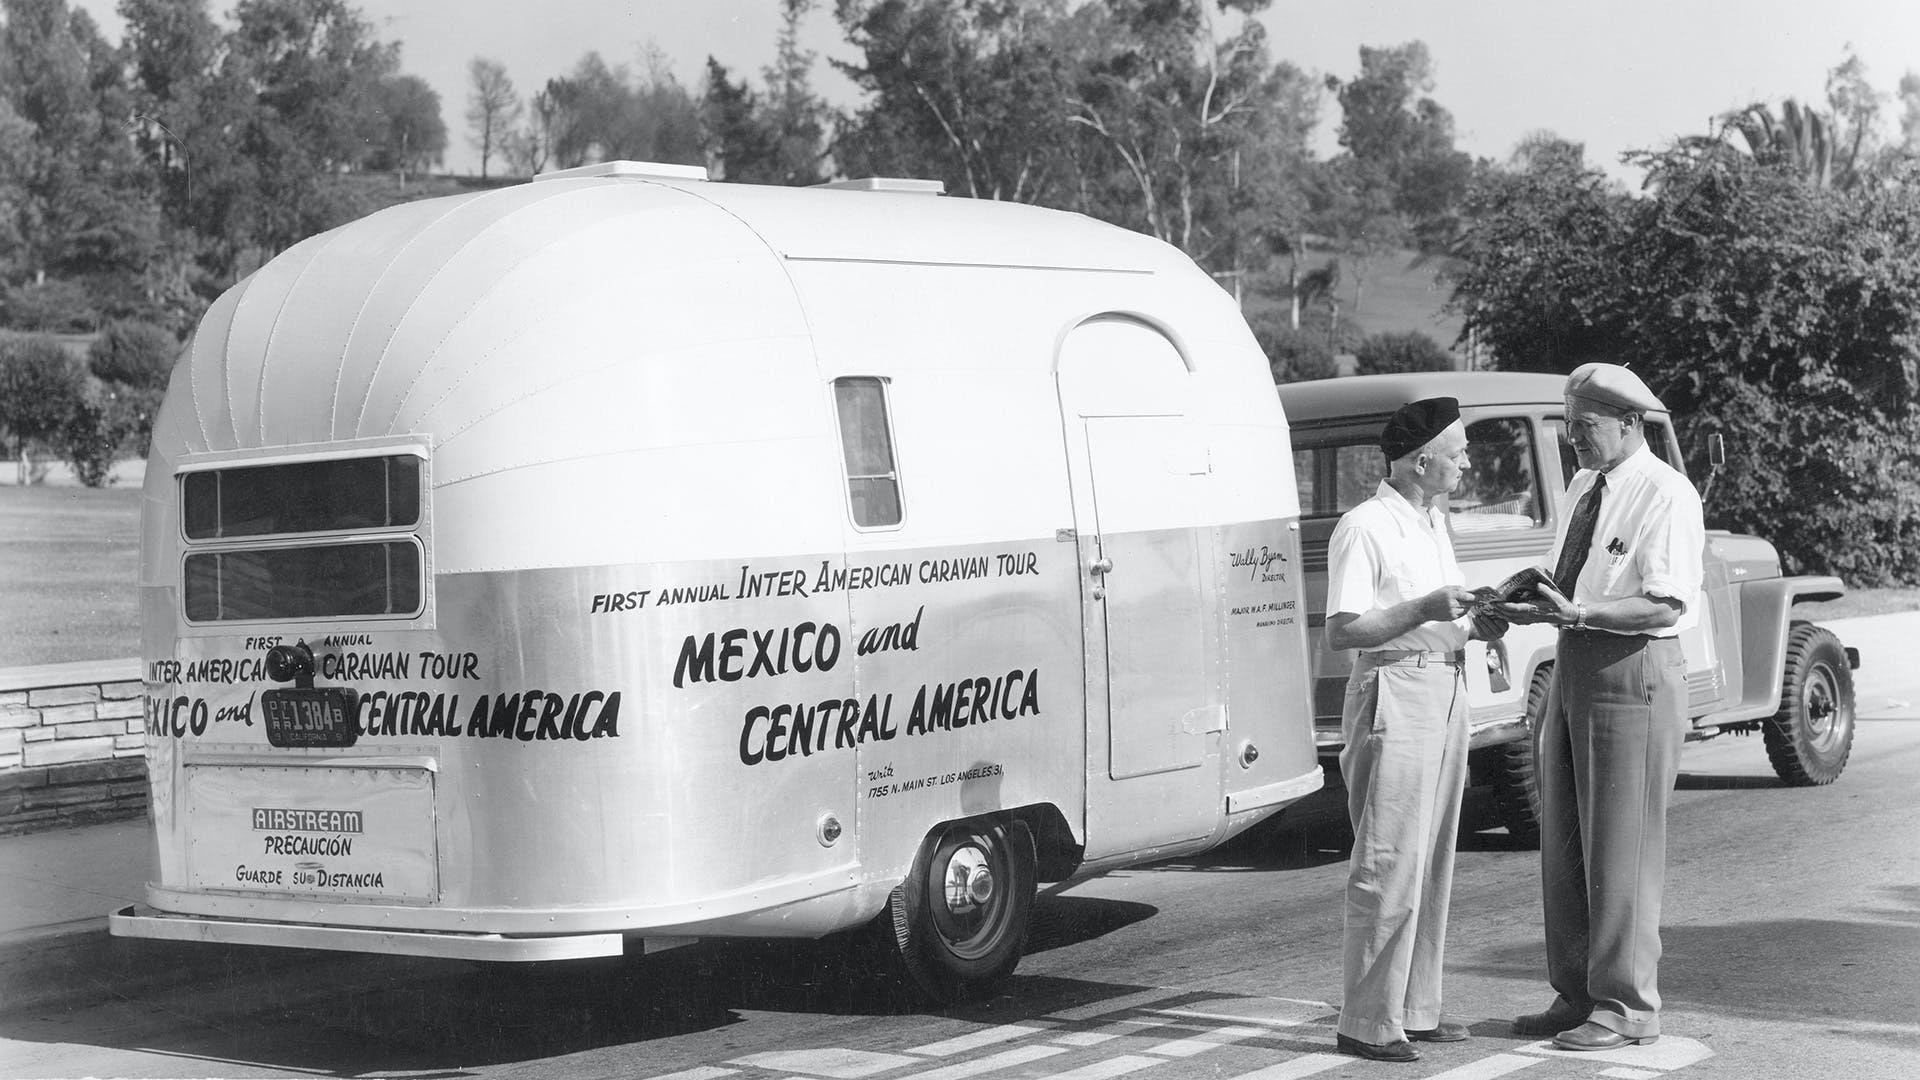 Airstream 1951 and 1952 Caravan Wally Byam and Caravan Scout